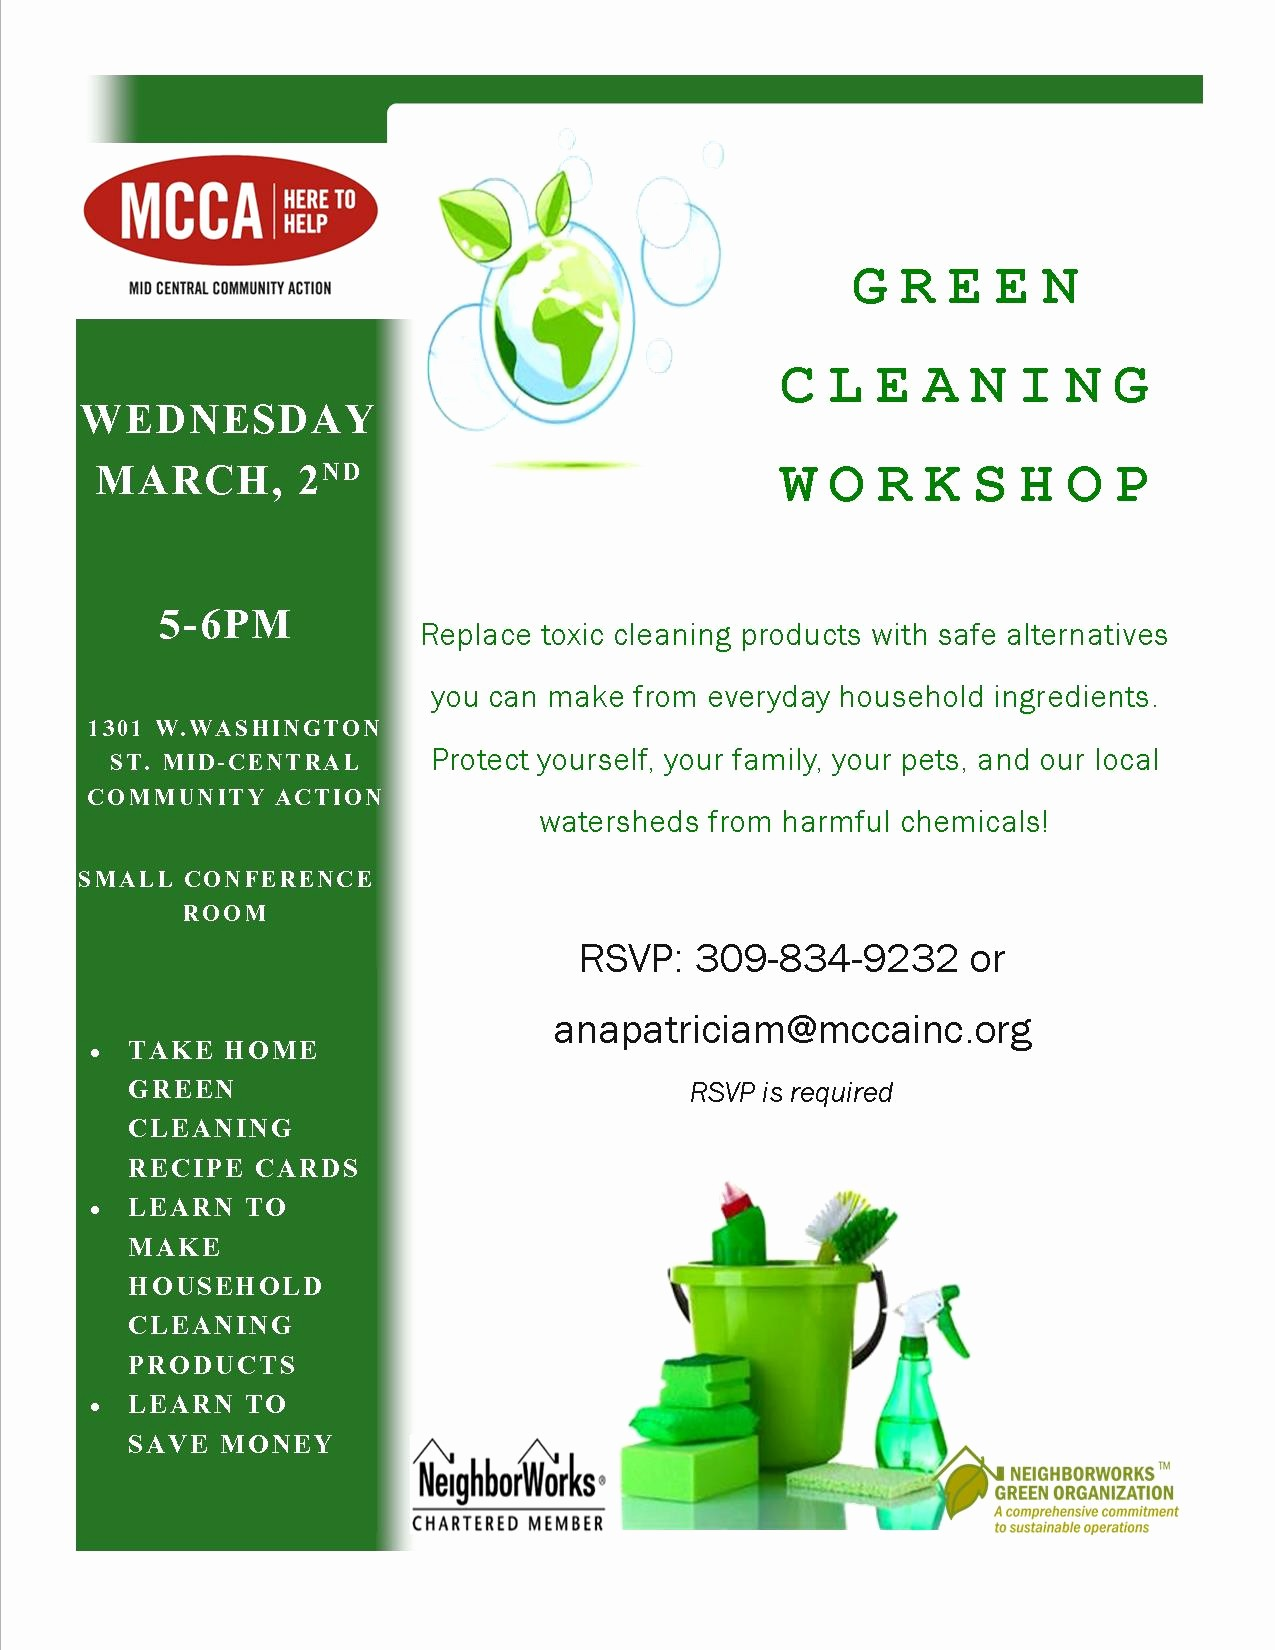 Office Clean Up Day Flyer Inspirational Green Cleaning Workshop – Ecology Action Center